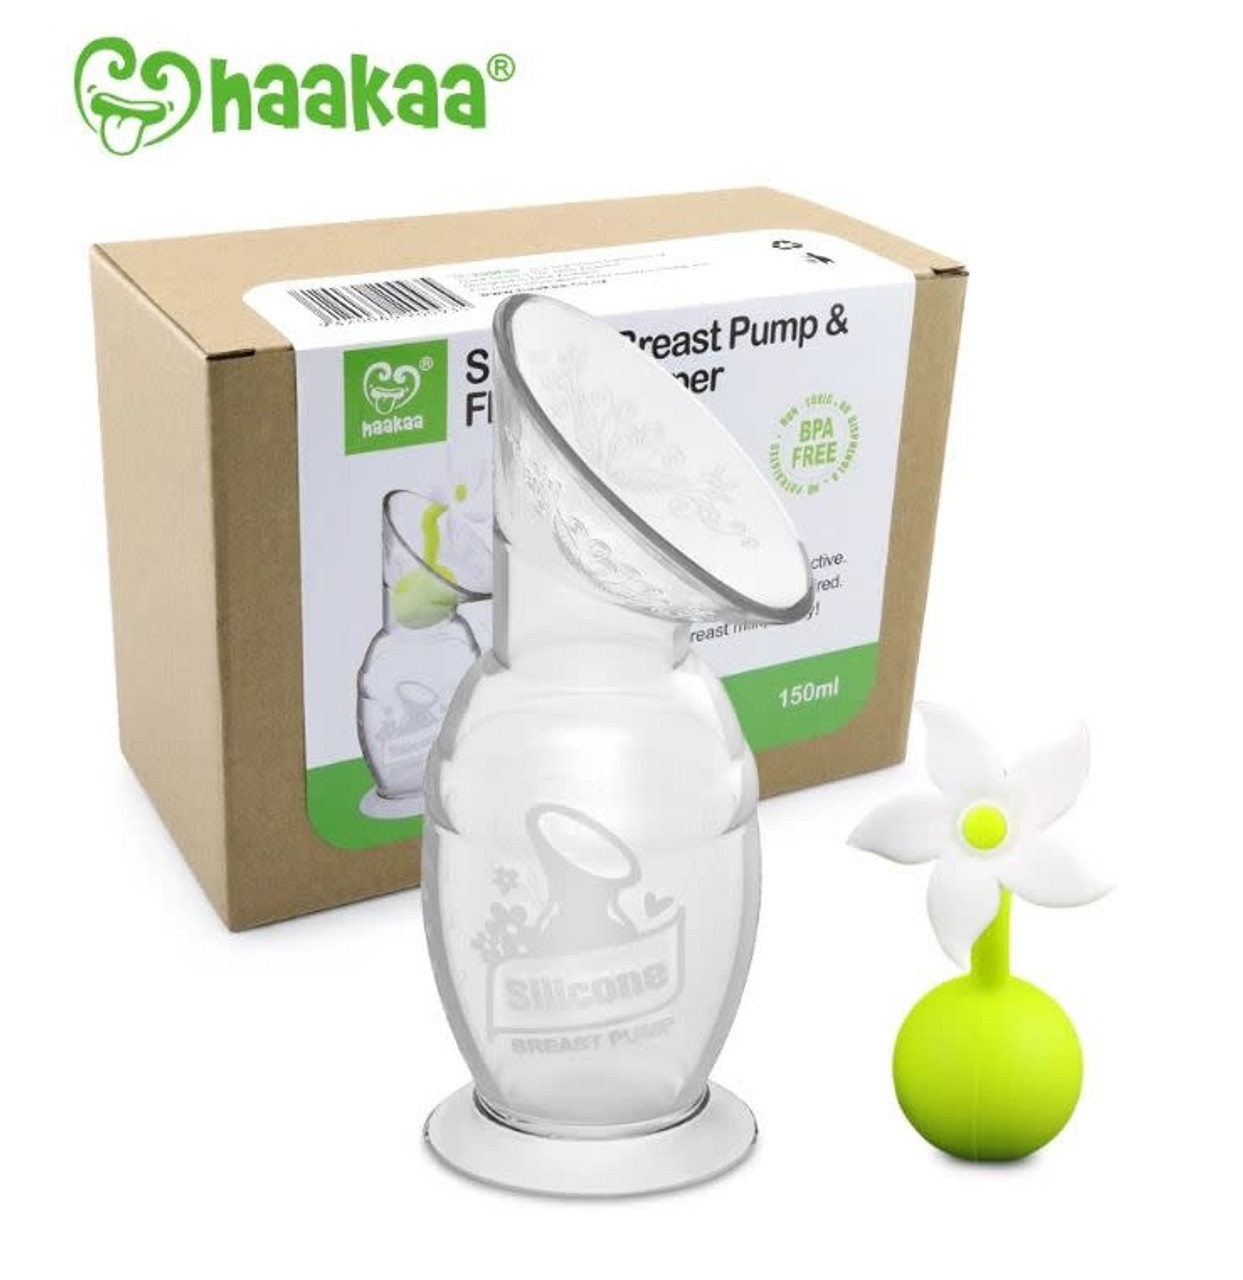 Haakaa Silicone Breast Pump & White Flower Stopper 150ml at Baby Barn Discounts This set includes the famous Haakaa Breast Pump and White silicone flower stopper in a gift box.